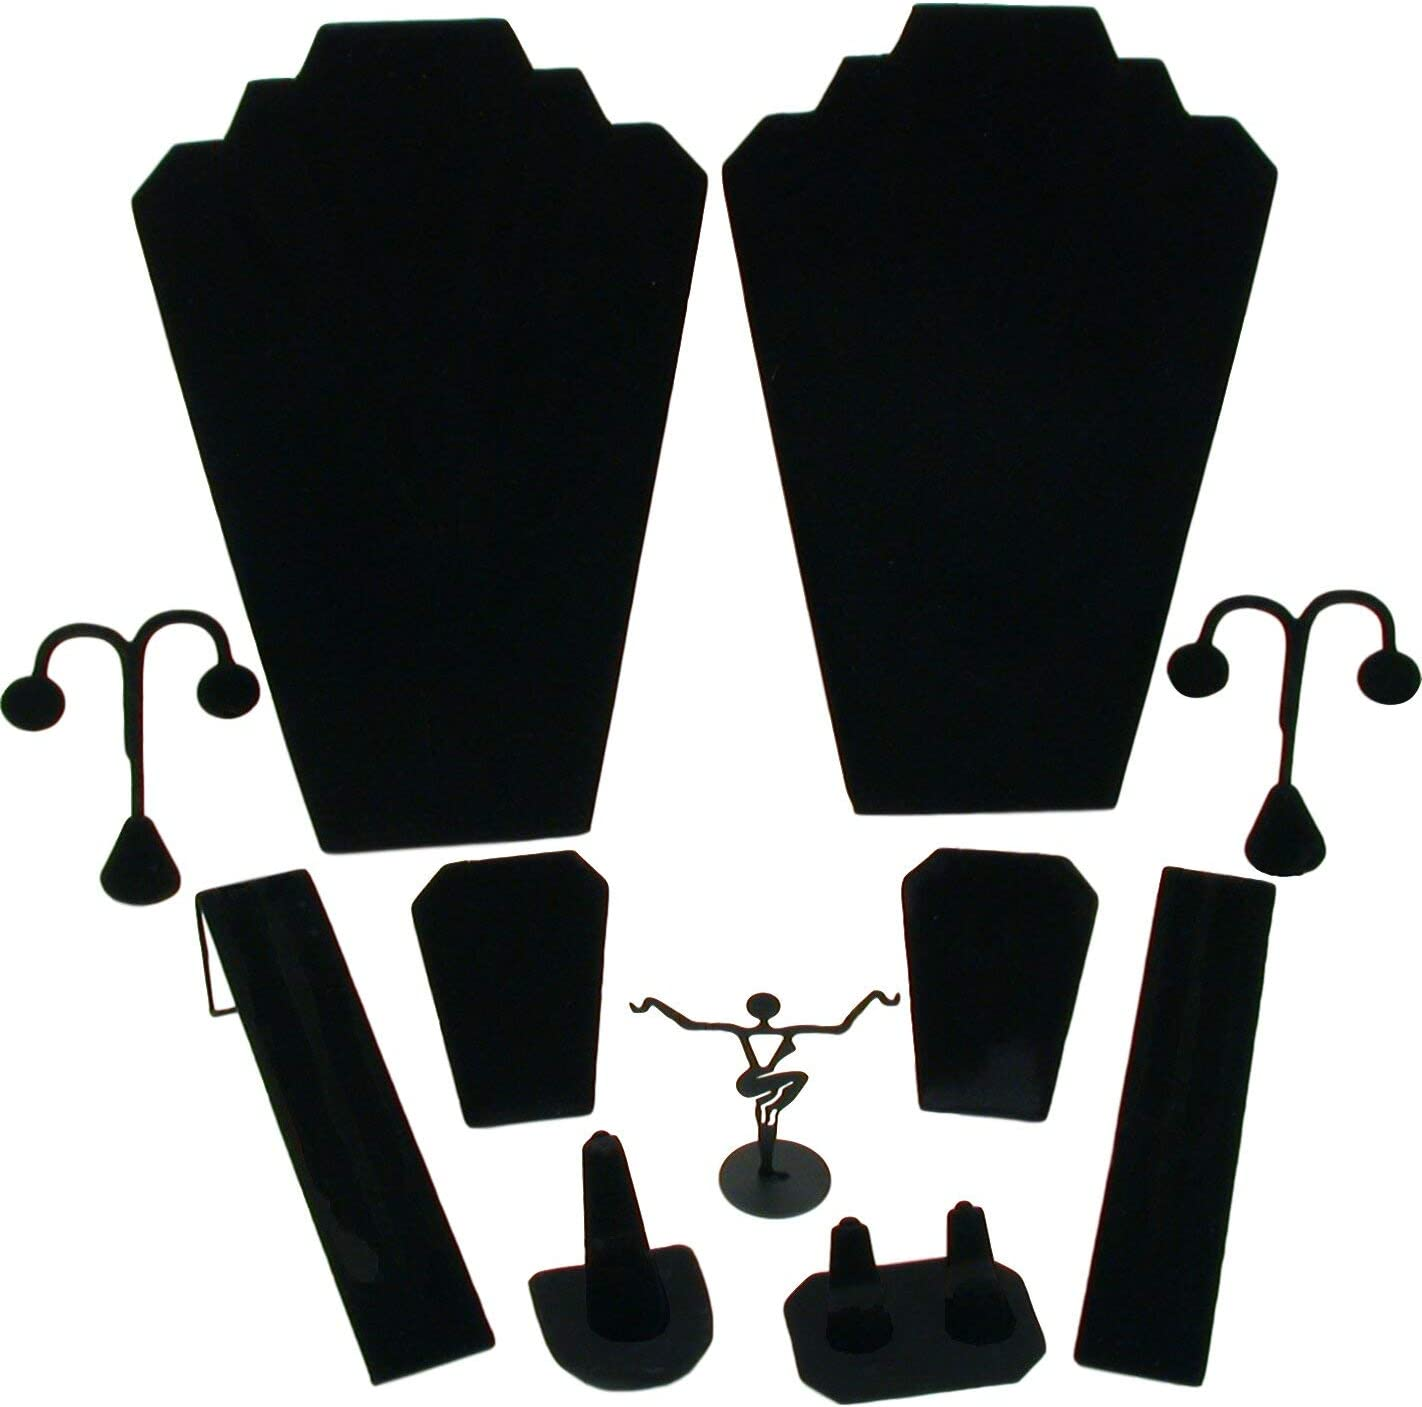 B0012O3HSA FindingKing 11 Pc Set Black Velvet Jewelry Displays Busts Bonus New 61iymovbHxL